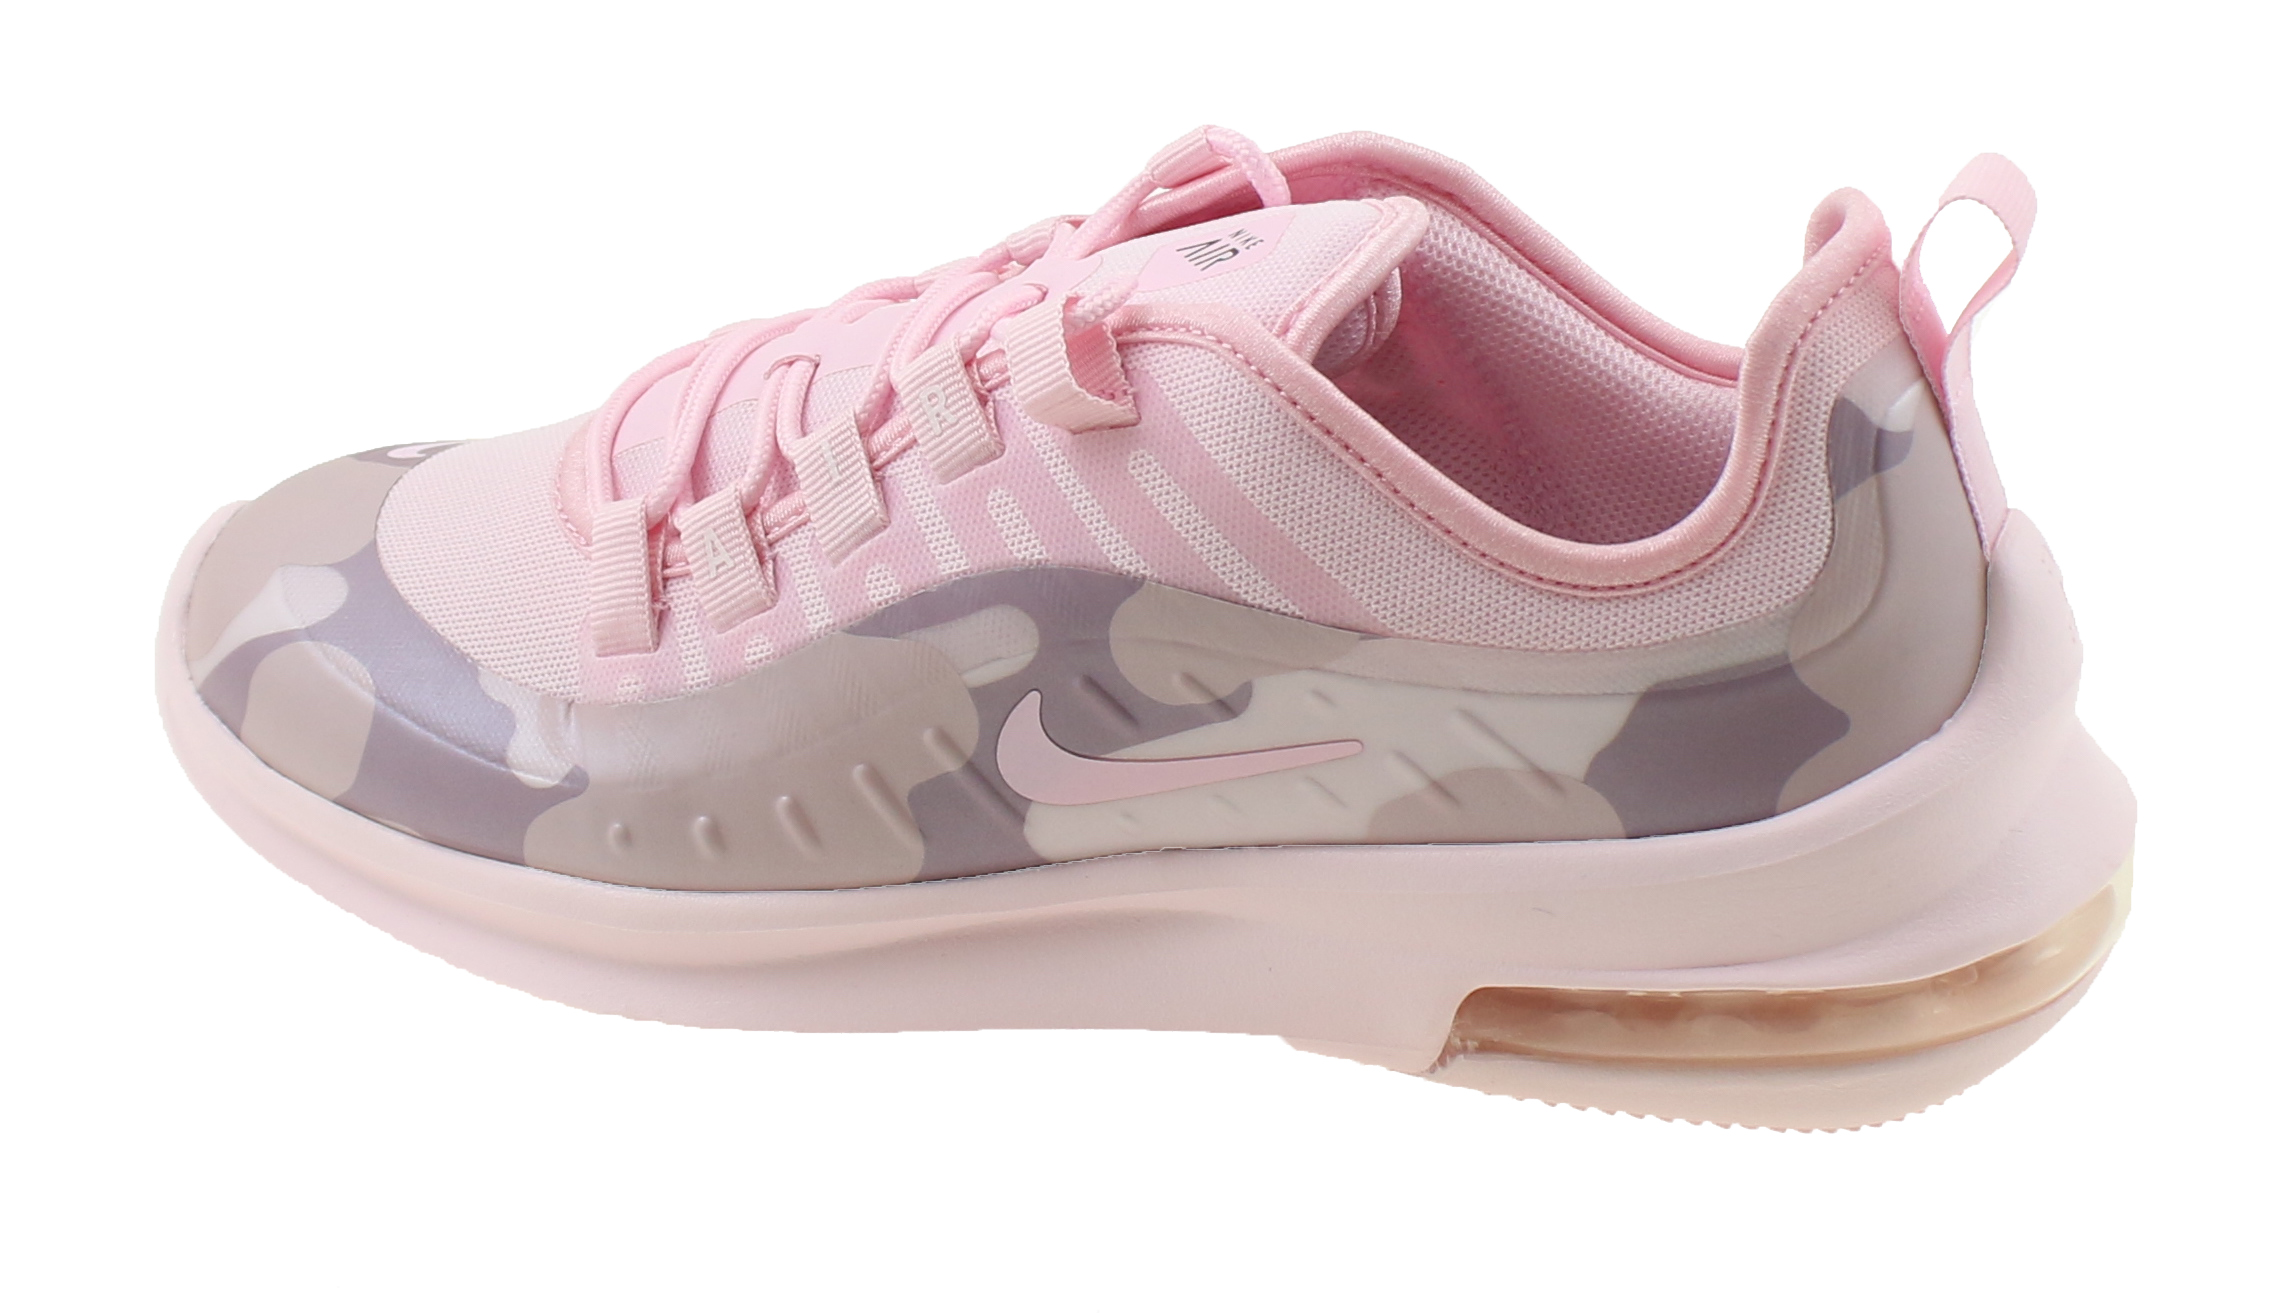 1d7a7aeb259aa2 Nike Air Max Axis Premium. BQ0126 600 PALE PINK PINK FOAM -BLACK. Product  afbeelding Product afbeelding Product afbeelding Product afbeelding